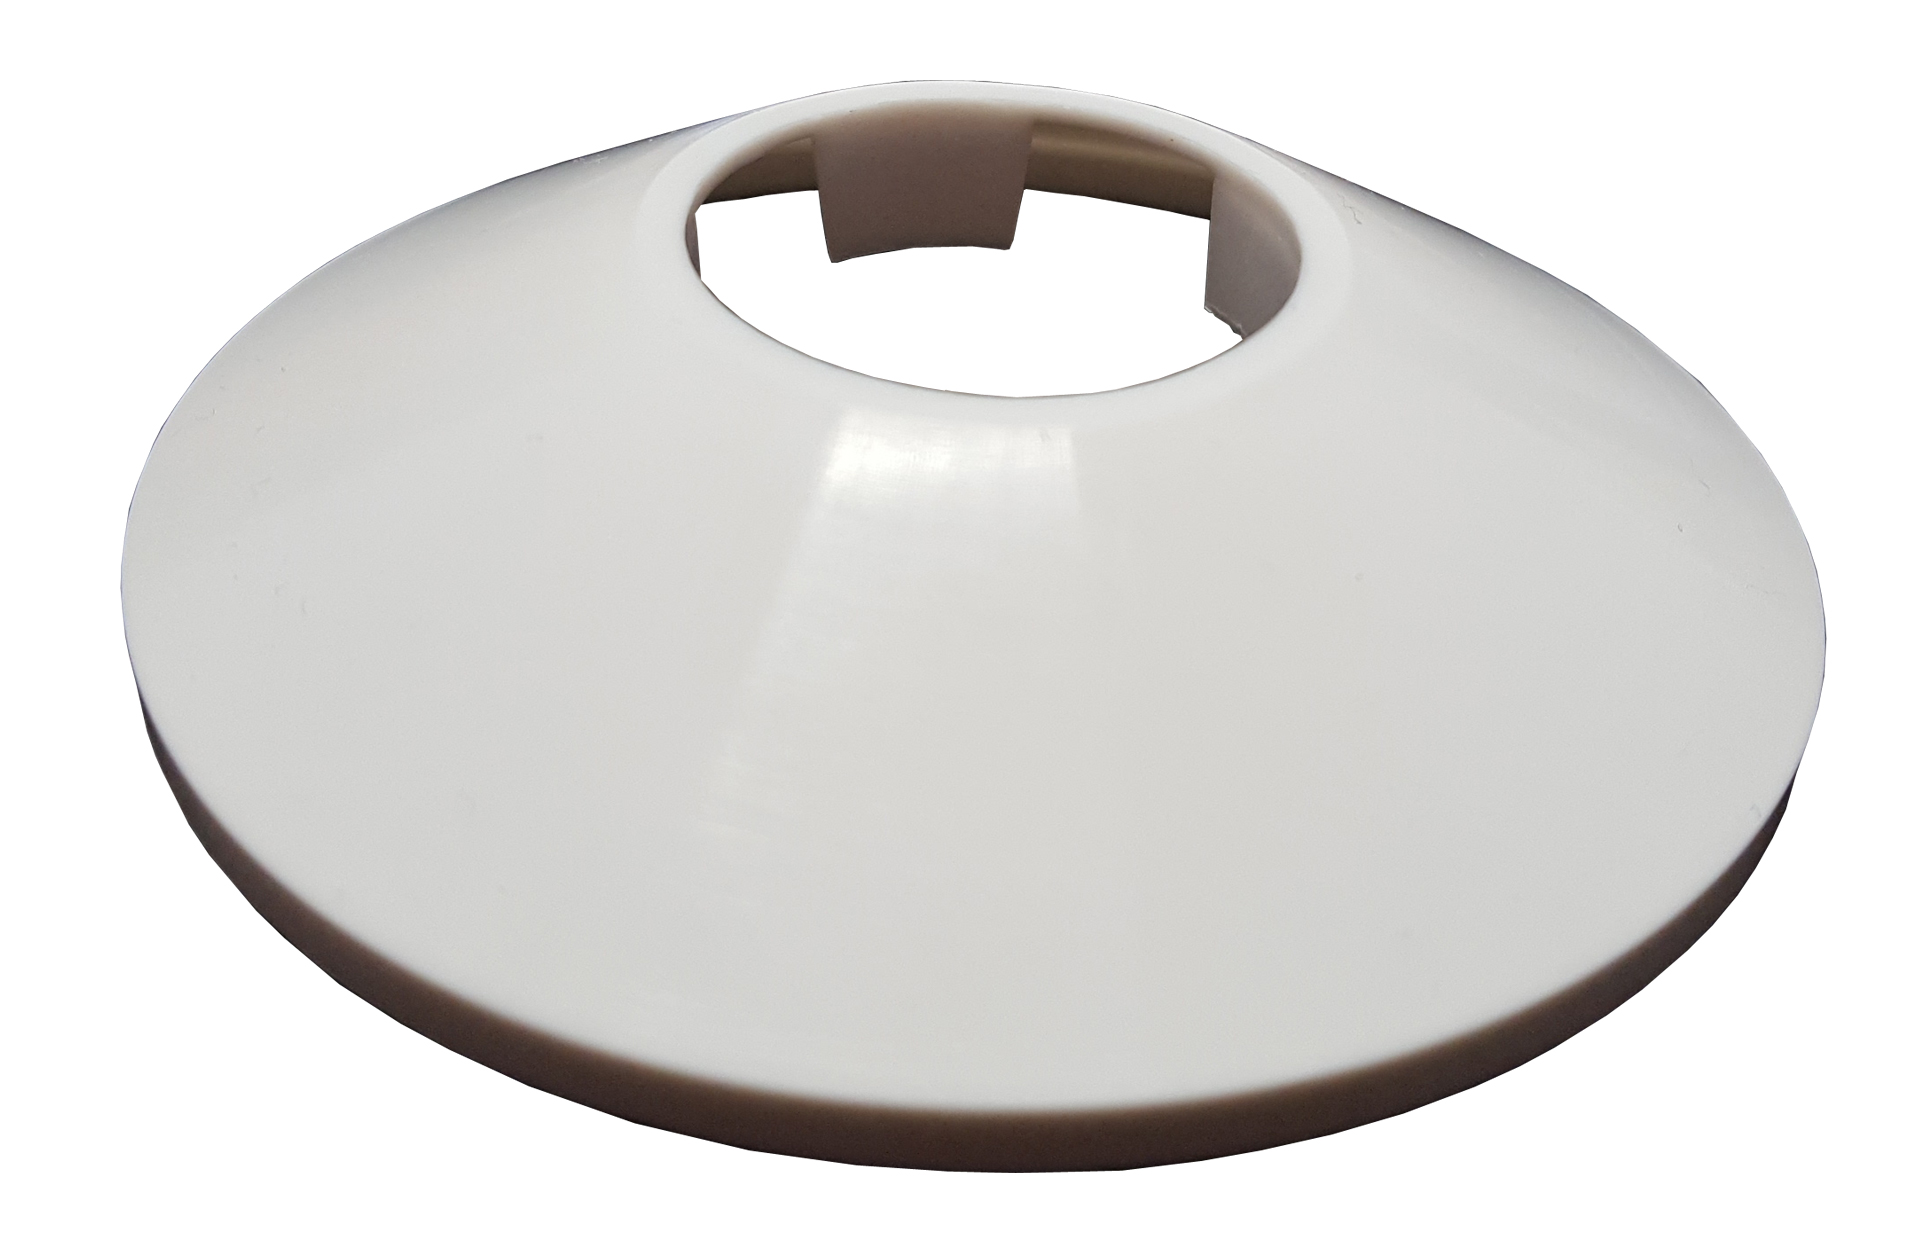 32mm White Cone Shaped Collar Rose Cover for Pipe Holes Gaps Hiding